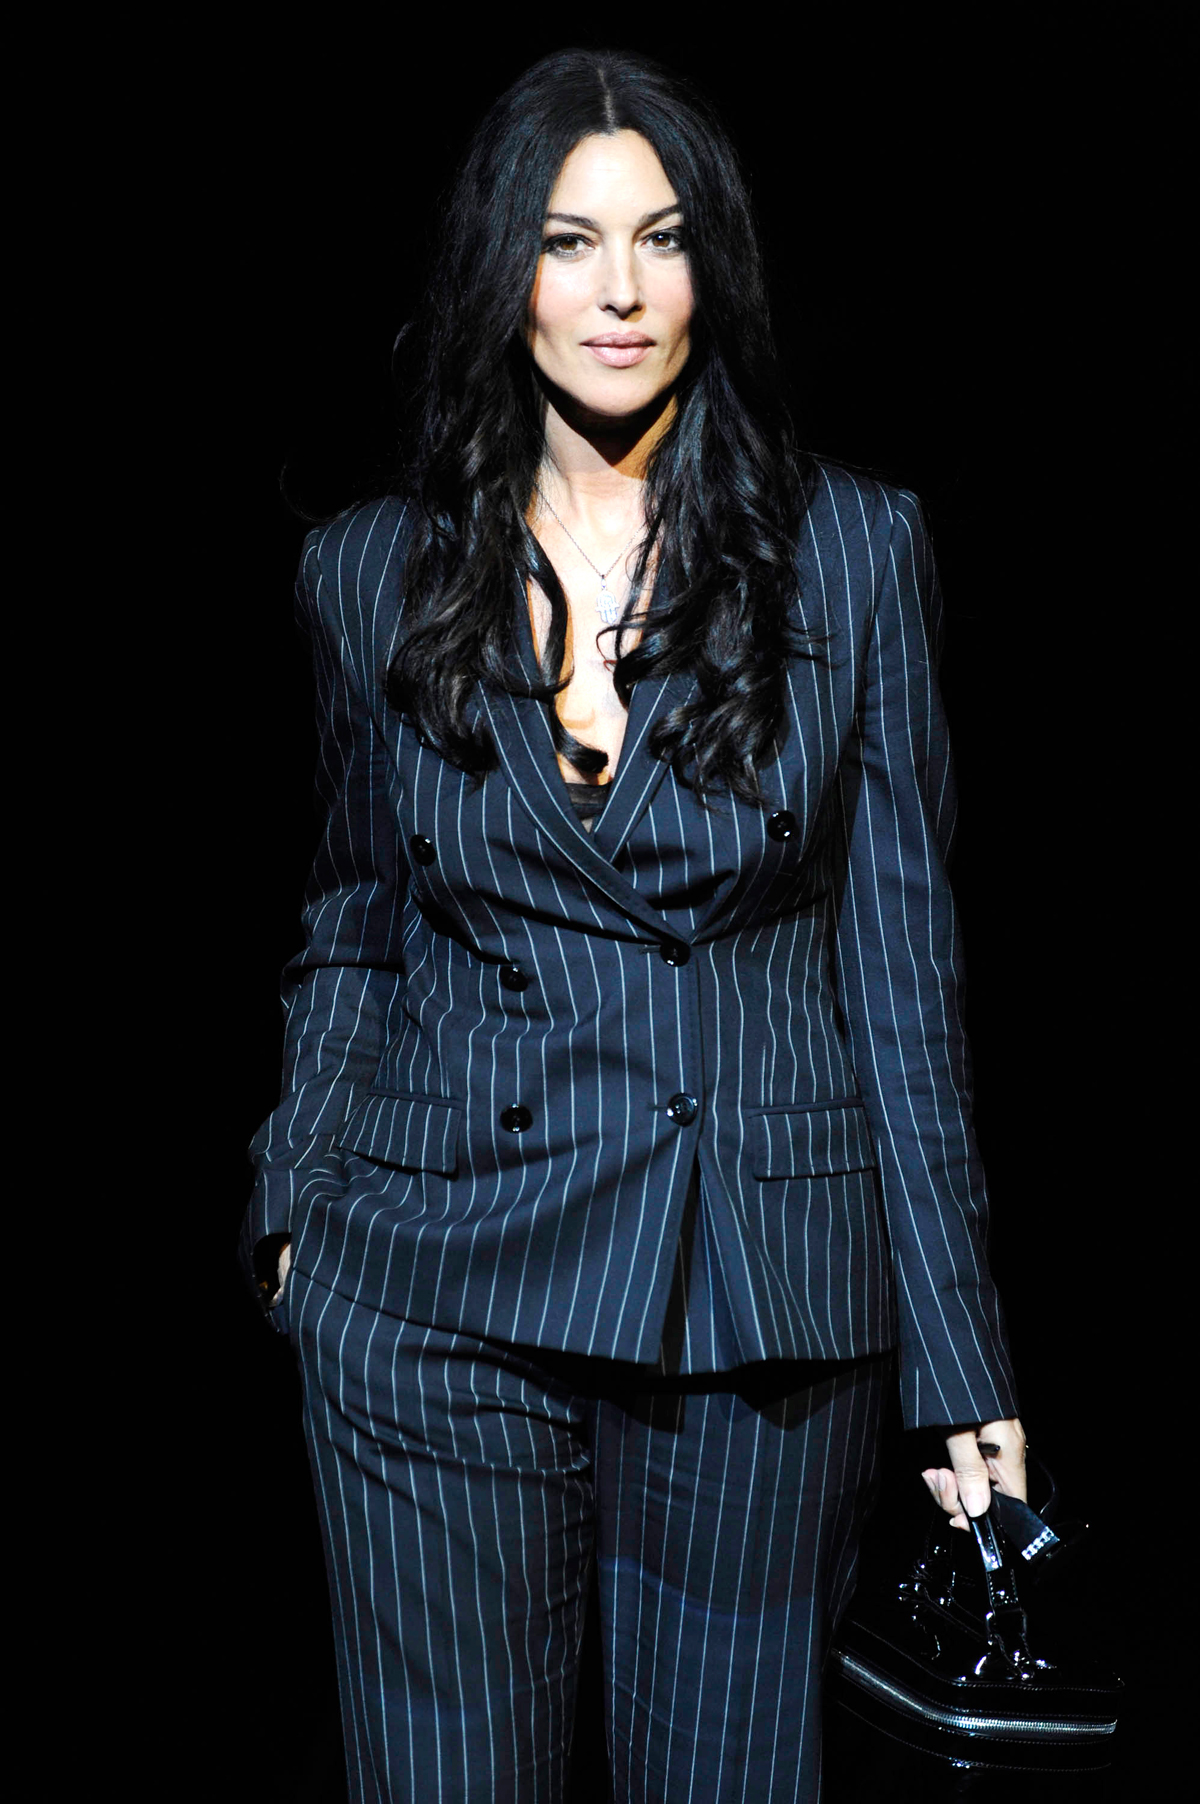 On the runway for Dolce & Gabbana at Milan Fashion Week, 2008